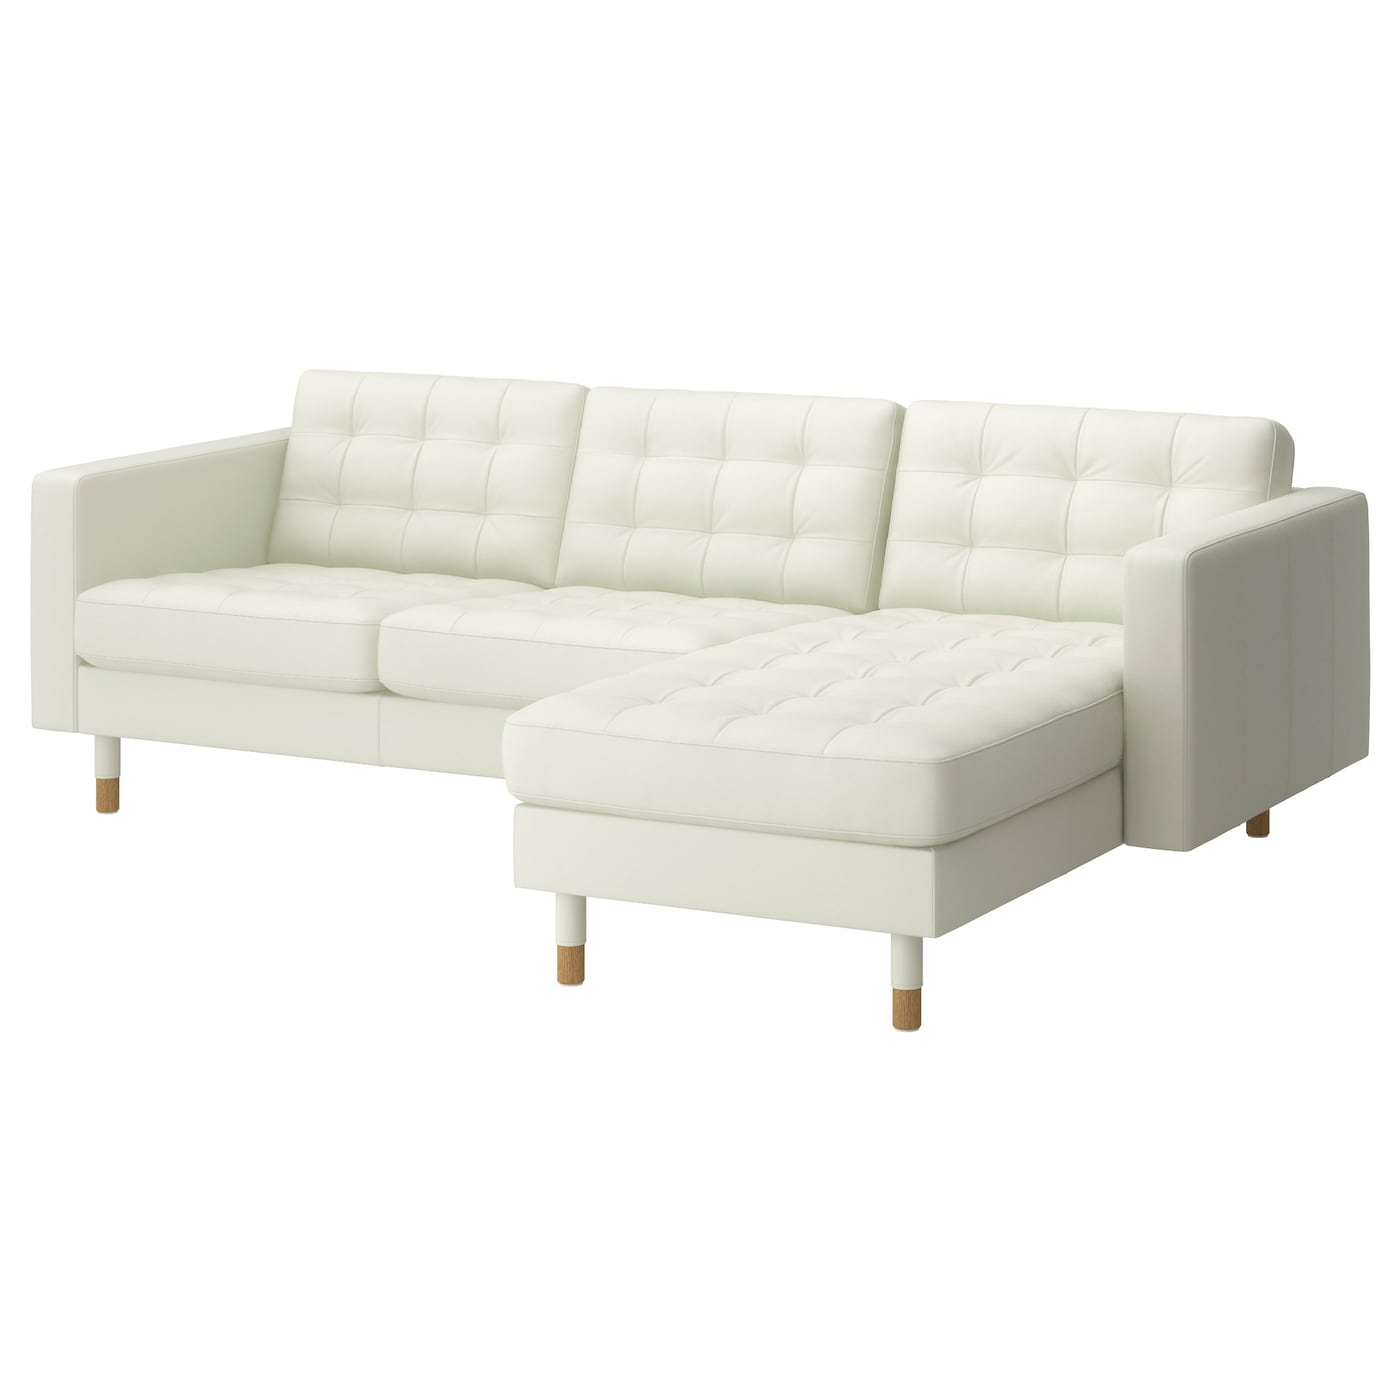 Landskrona two seat sofa and chaise longue grann bomstad for Chaise longue jardin ikea